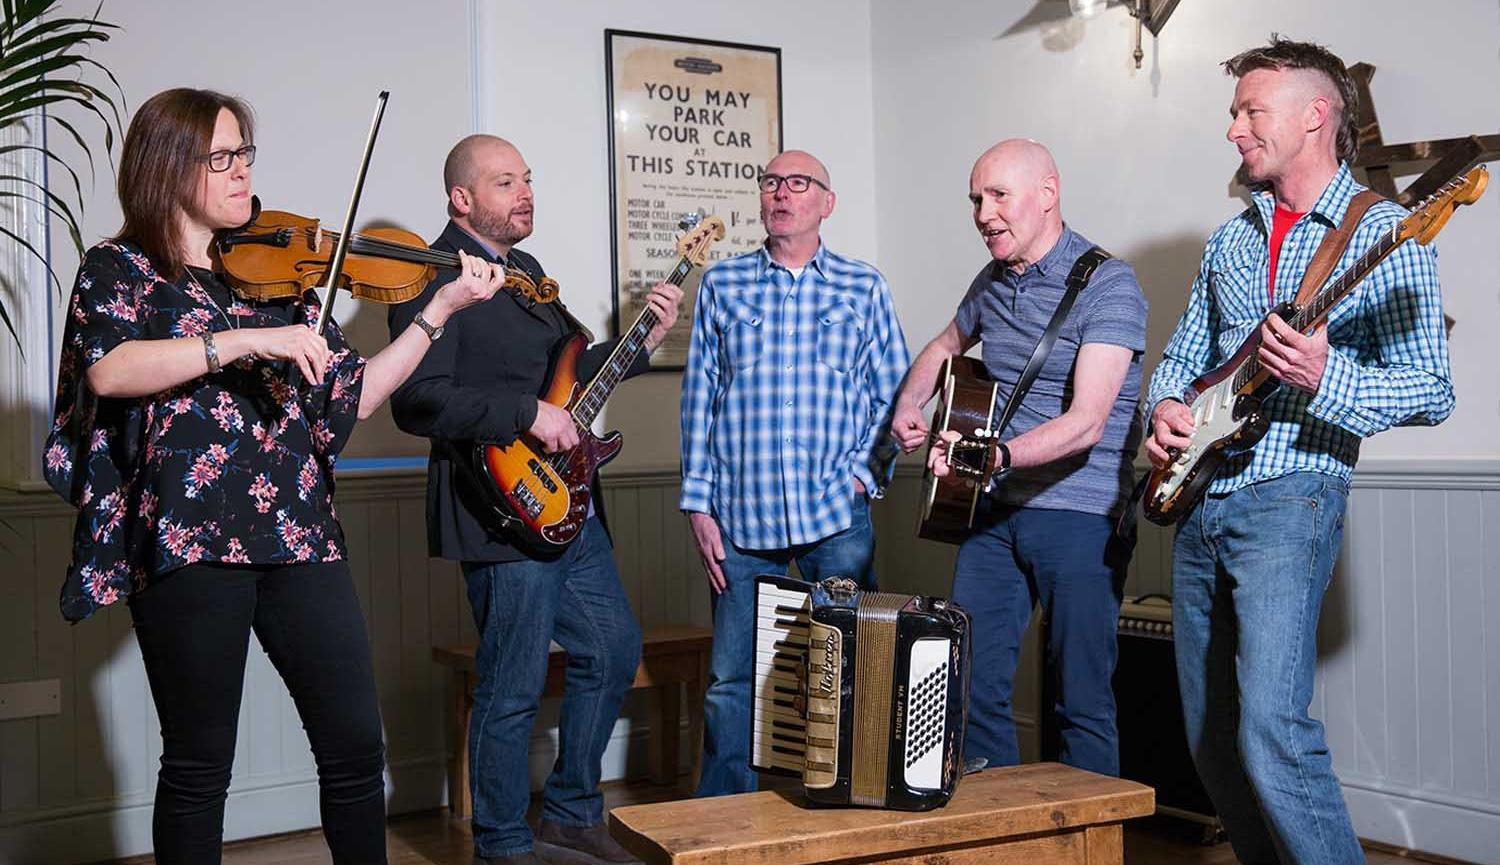 The Caffreys musicians